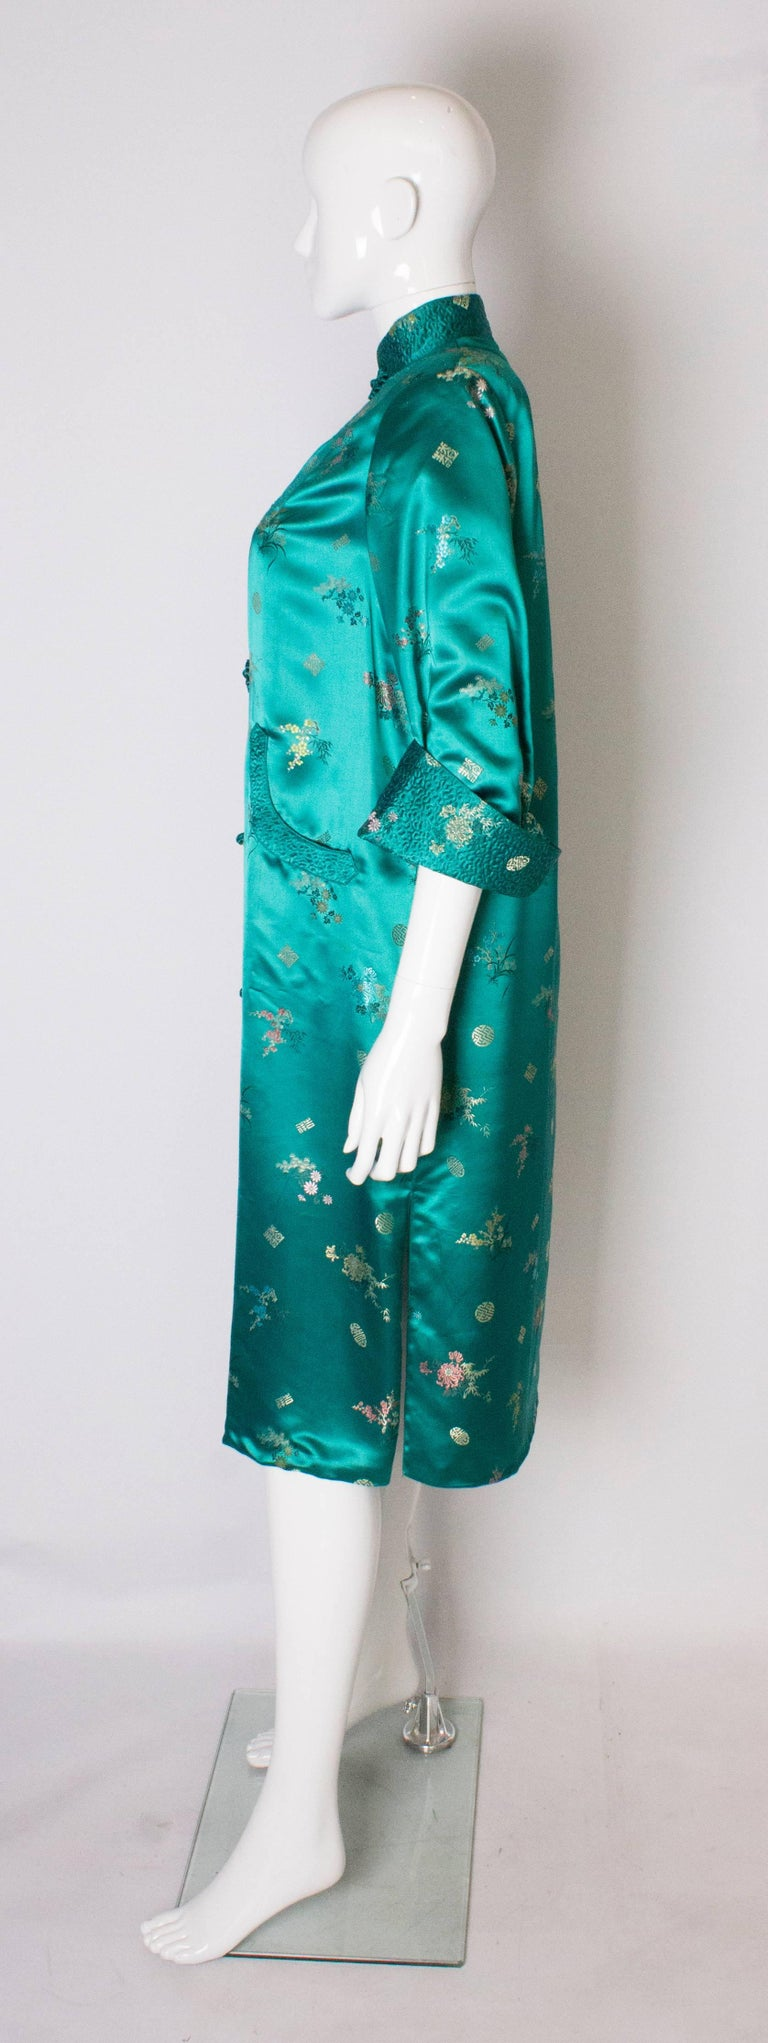 Women's A Vintage 1970s turquoise Chinese Coat with Standup Collar & Decorative Pockets For Sale